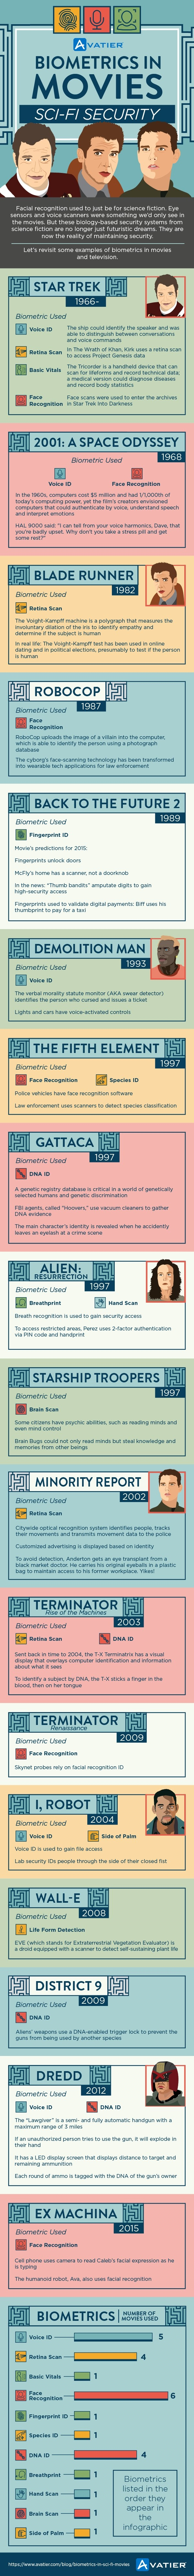 Biometrics in Movies Sci-Fi Security